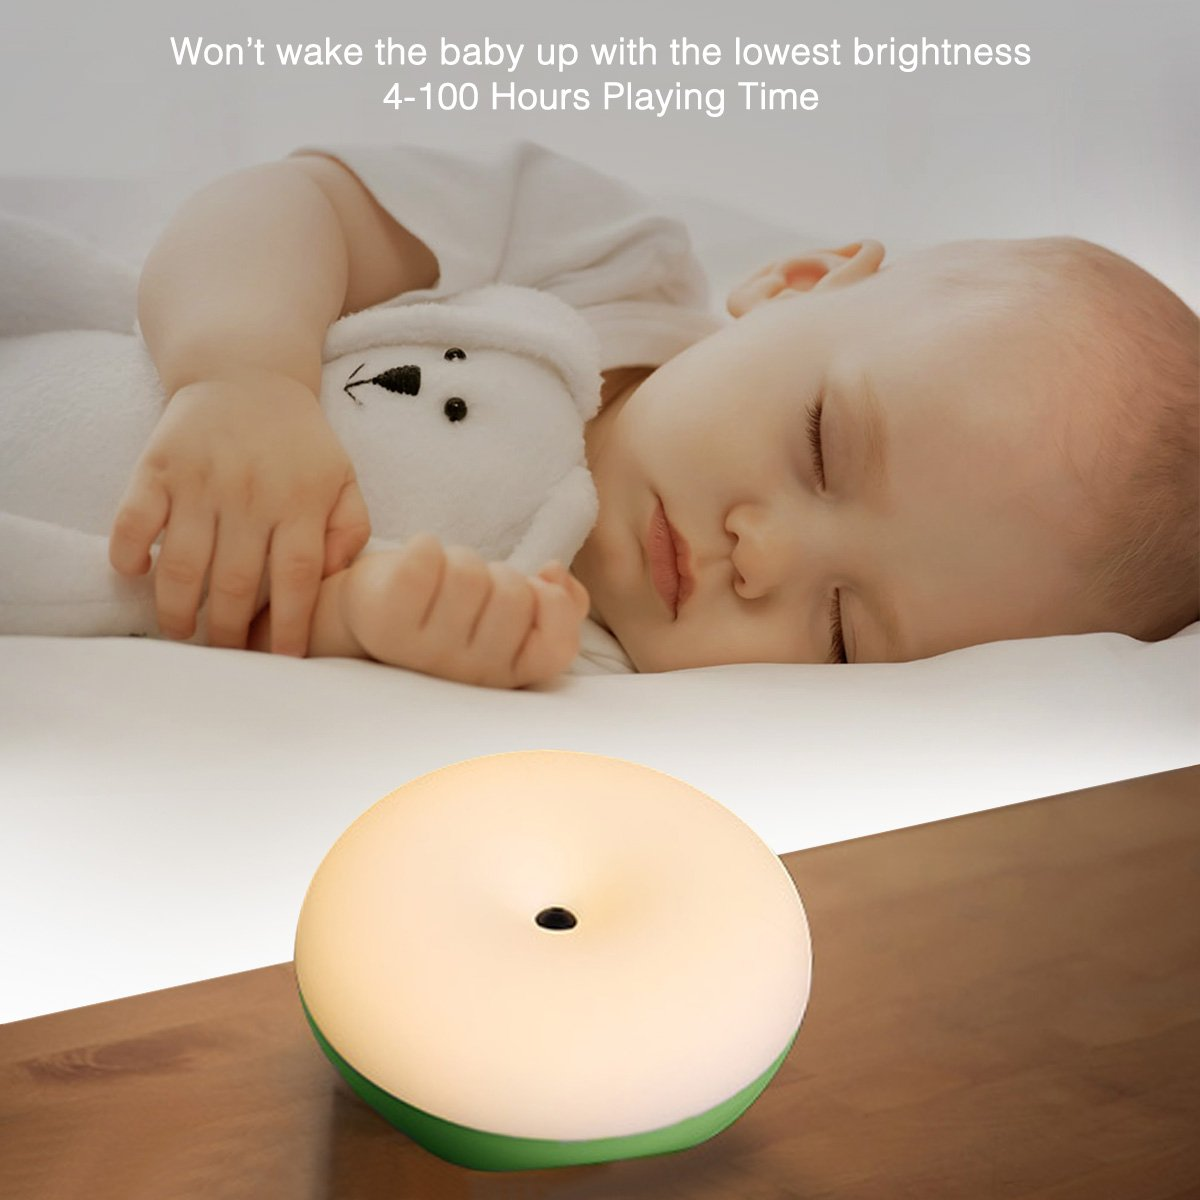 Poweradd LED Table Lamp, Infinite Brightness Adjustable Eye-caring 2900K Wireless Sensor Baby Room Lamp with Hanging Loop, 4-100 Hours Playing Time, Memory Function, Wonderful Gifts, - Green.